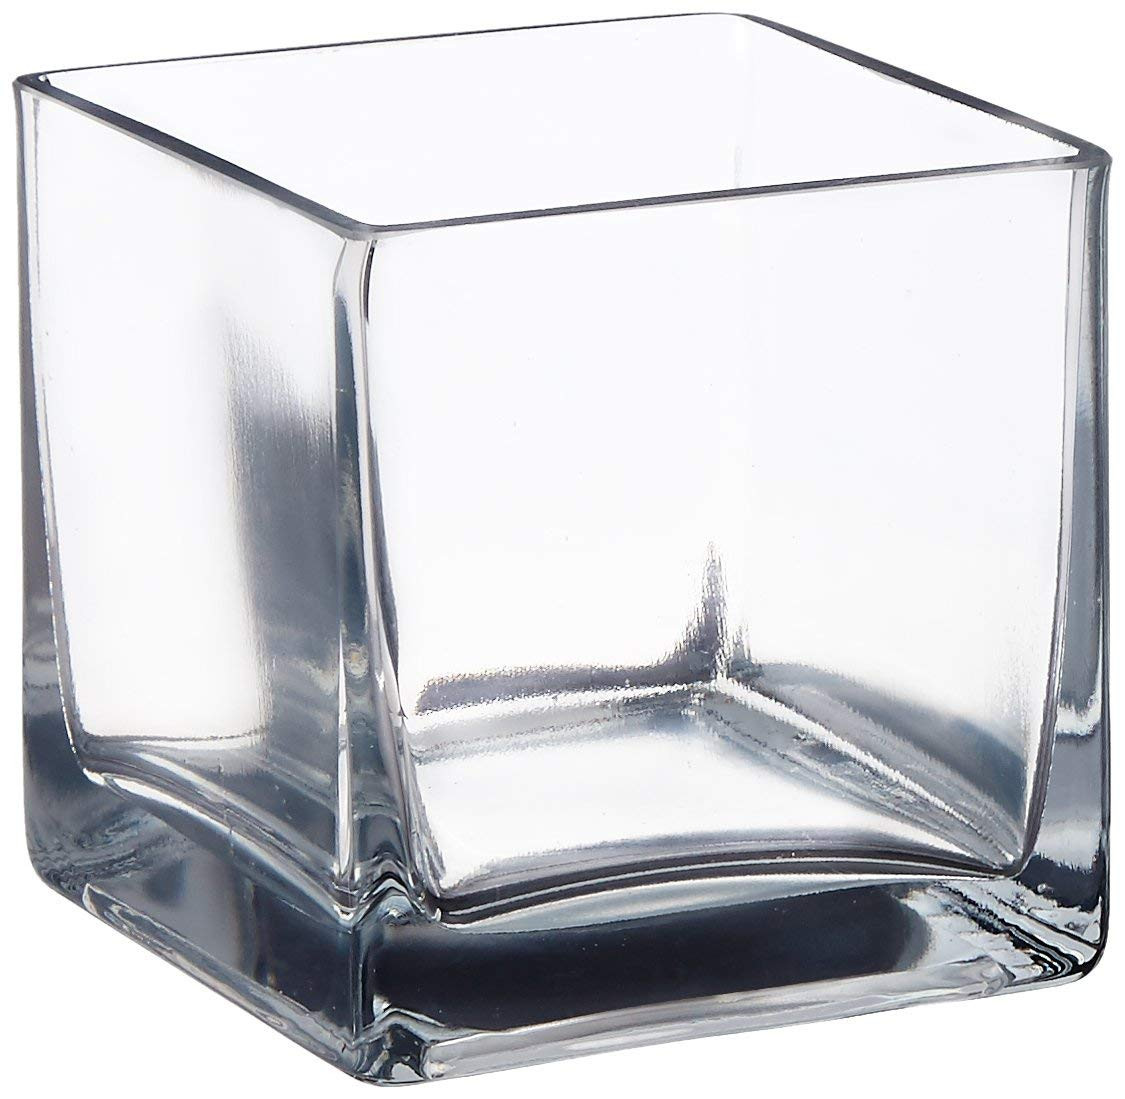 cube glass vase 6x6x6 of amazon com vasefill 4 square glass vase 4 clear cube centerpiece for amazon com vasefill 4 square glass vase 4 clear cube centerpiece 4 l x 4 w x 4 h candleholder home kitchen